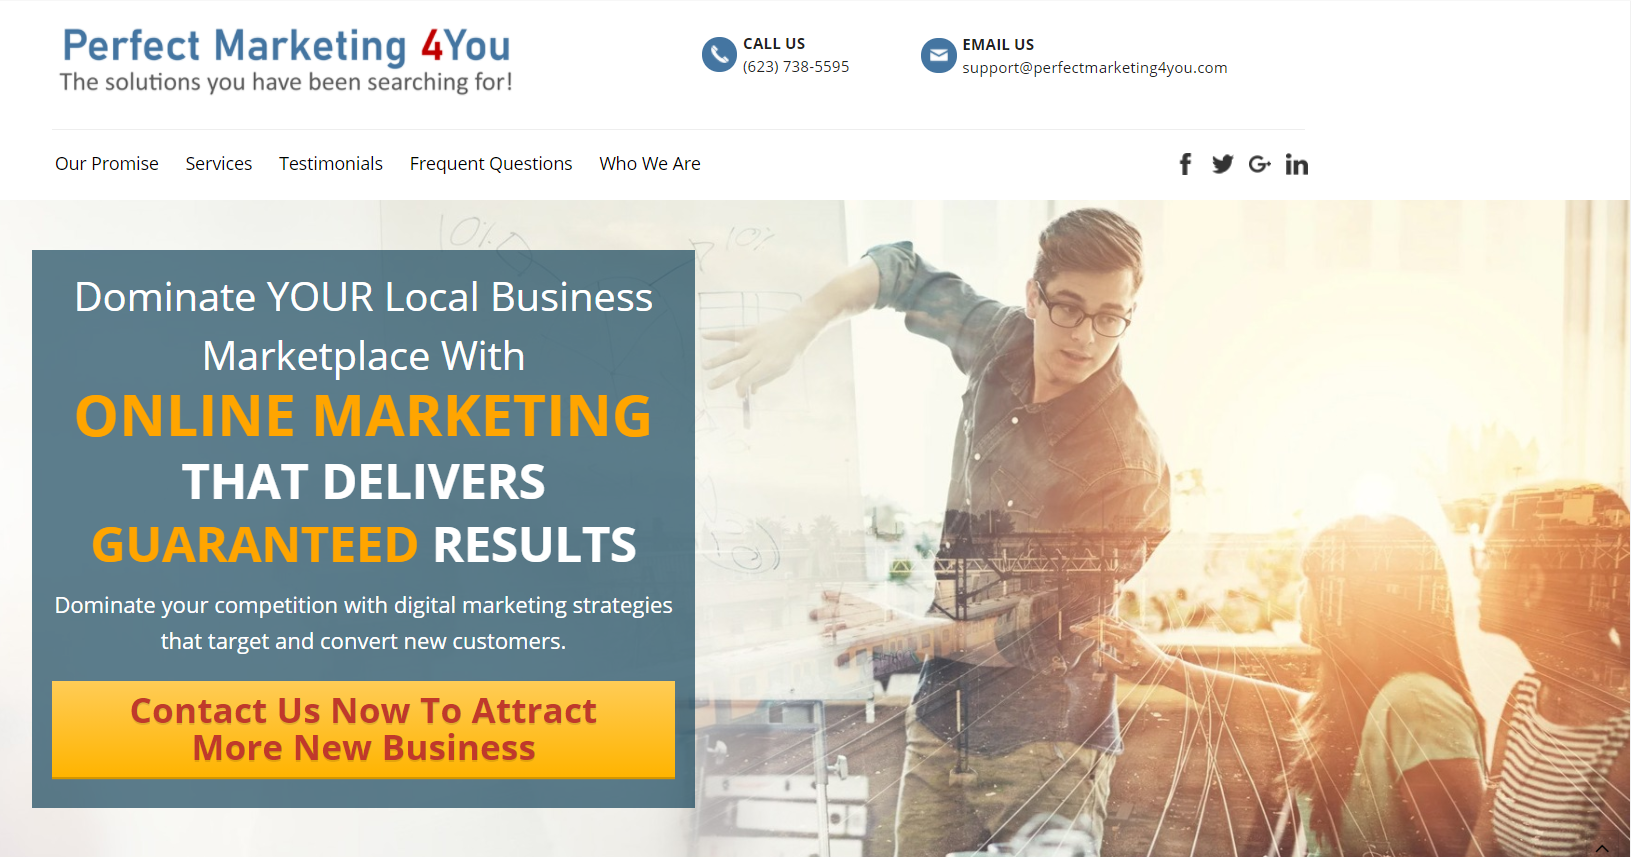 Perfect Marketing 4You home page image